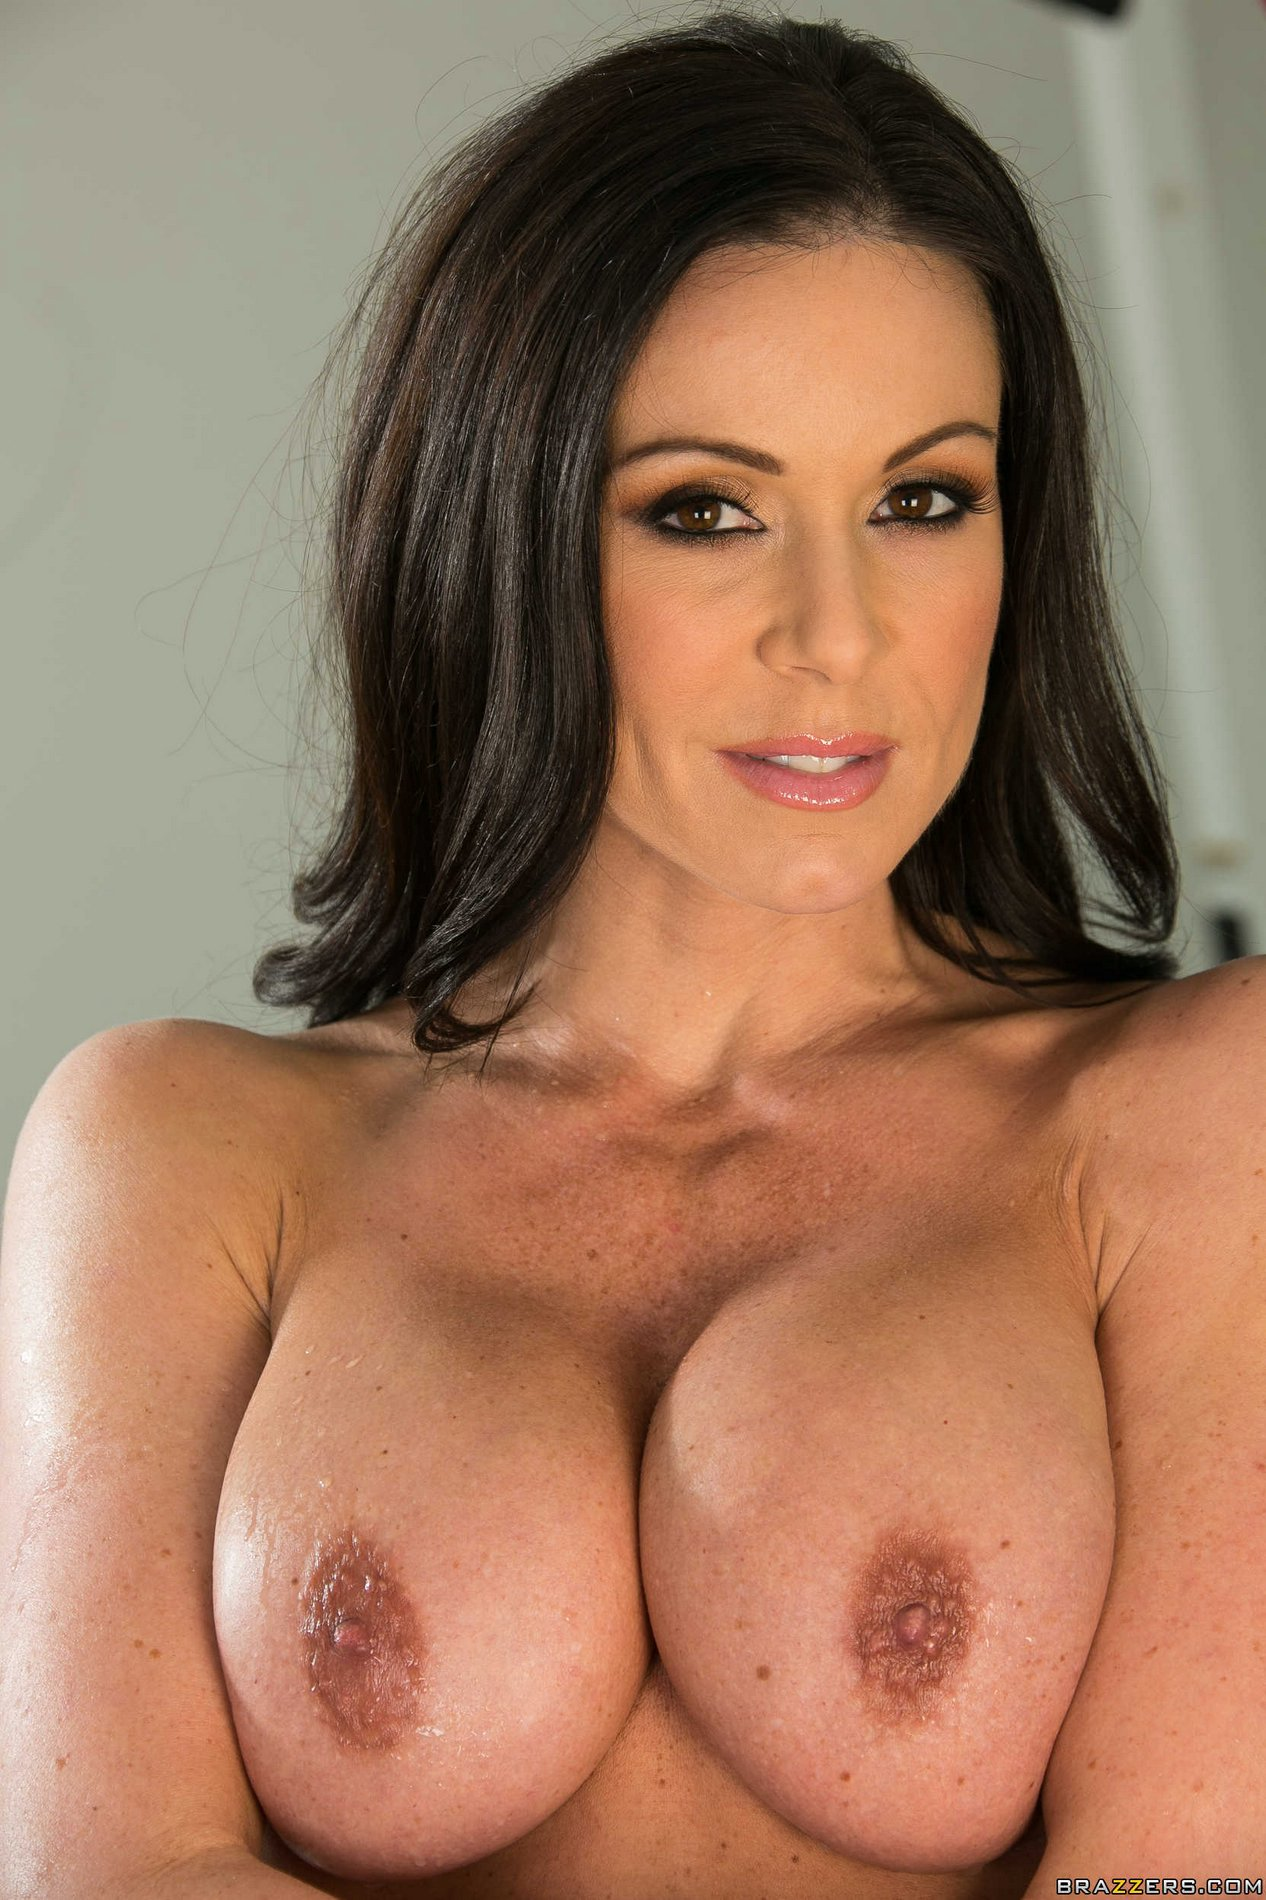 brazzers archives - watch full hd porn videos online free